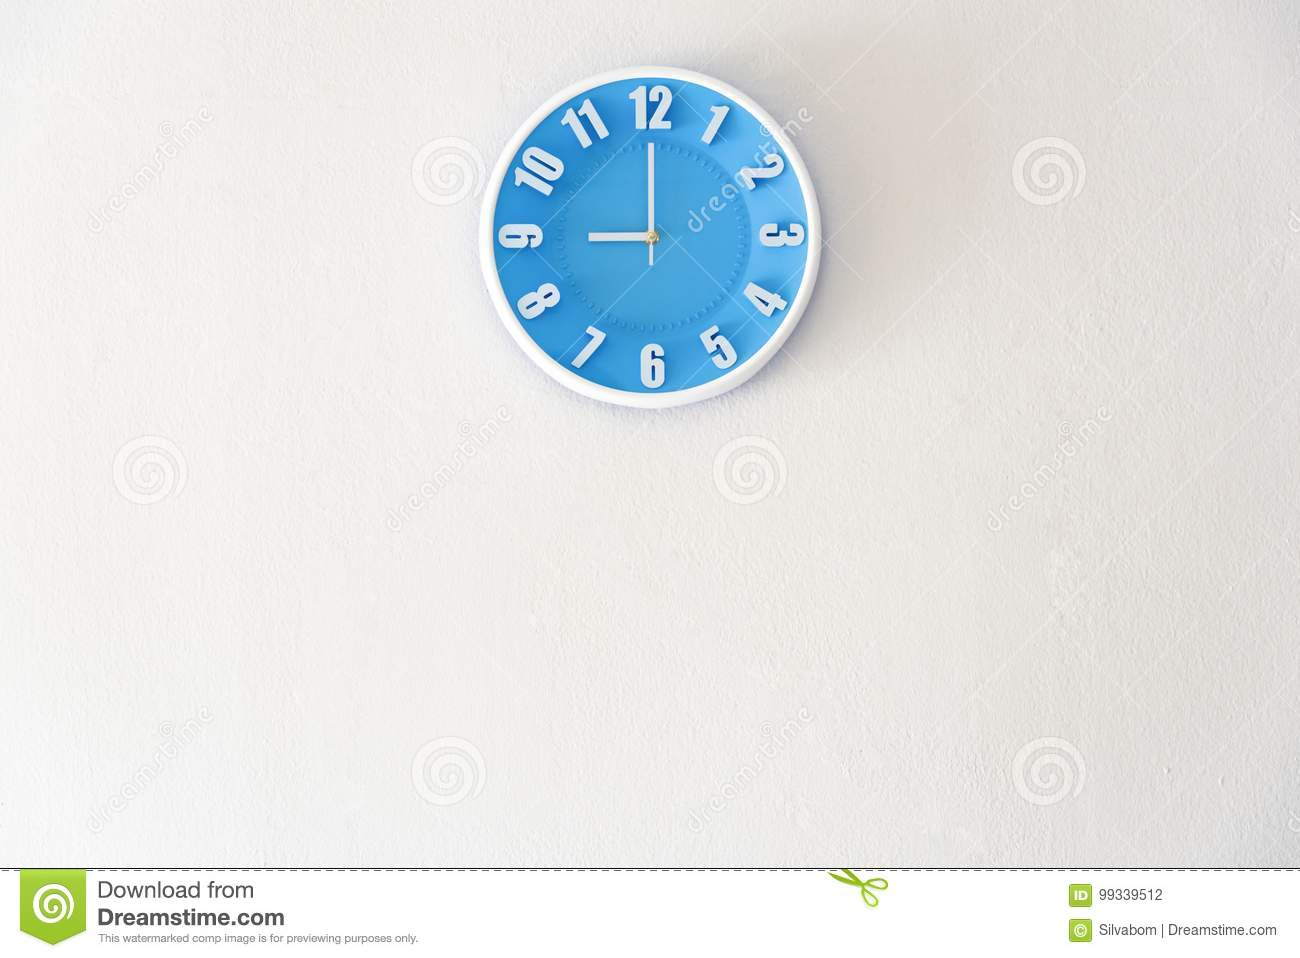 Good morning or night time with 9:00 clock on white concrete wall interior background with copy space, message board concept. Goo